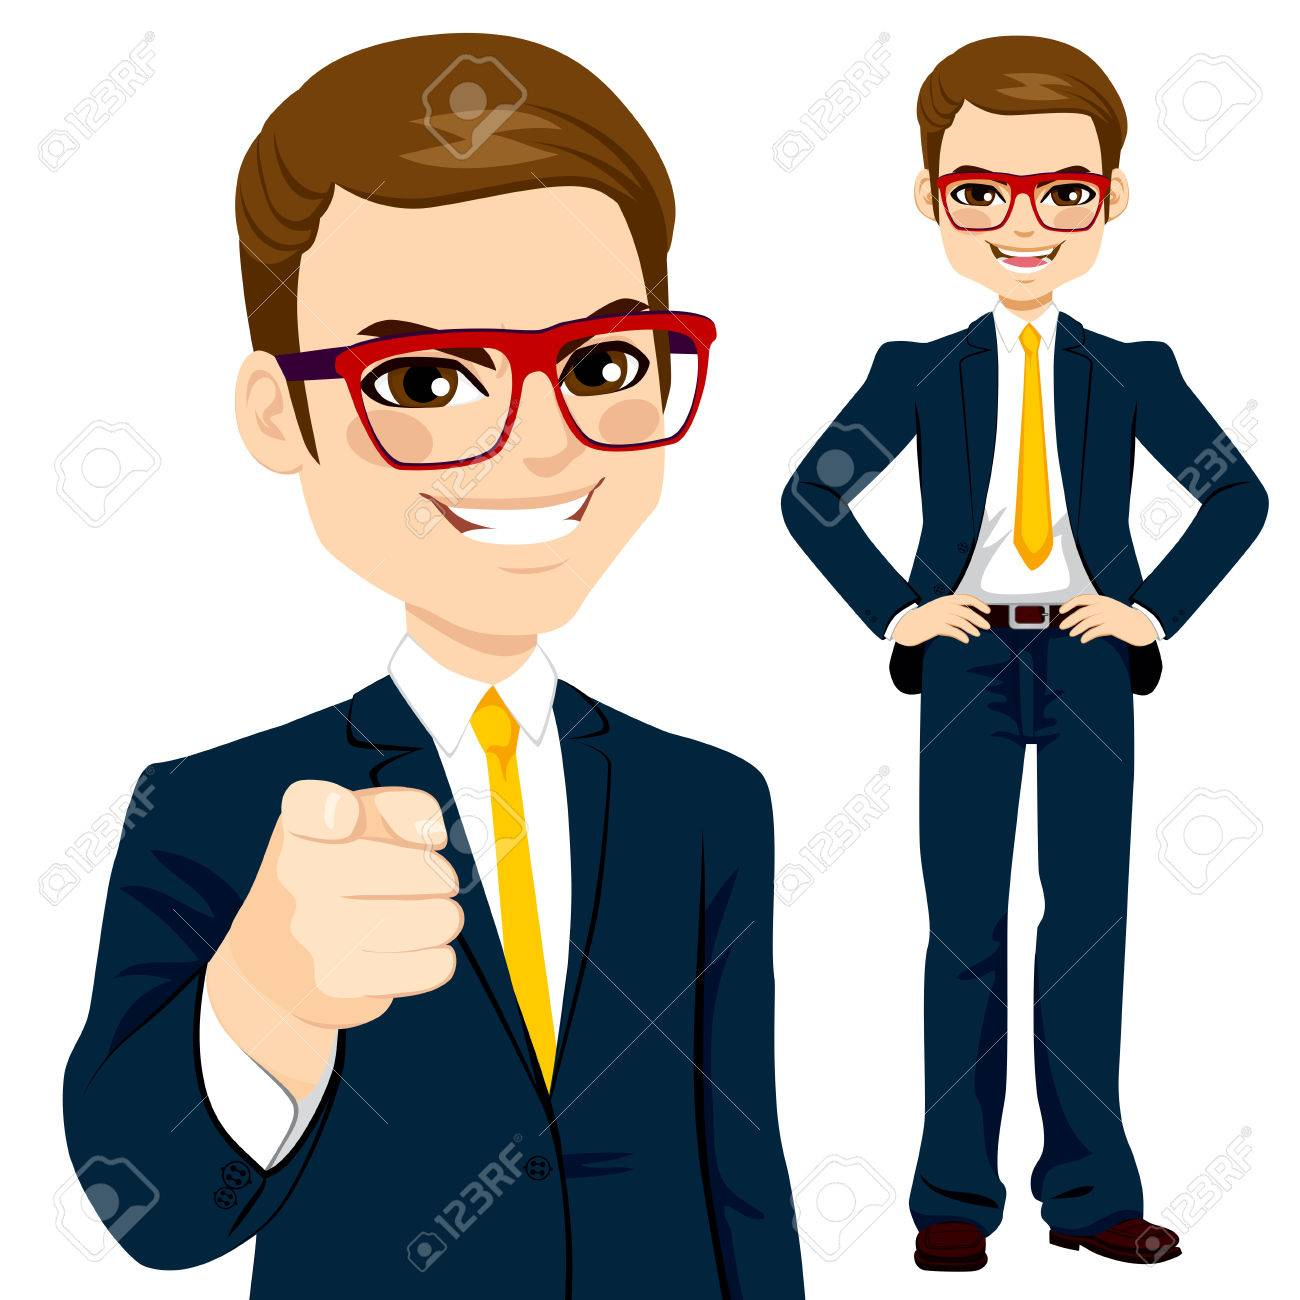 Professional businessman wearing suit and pointing finger - 58655954